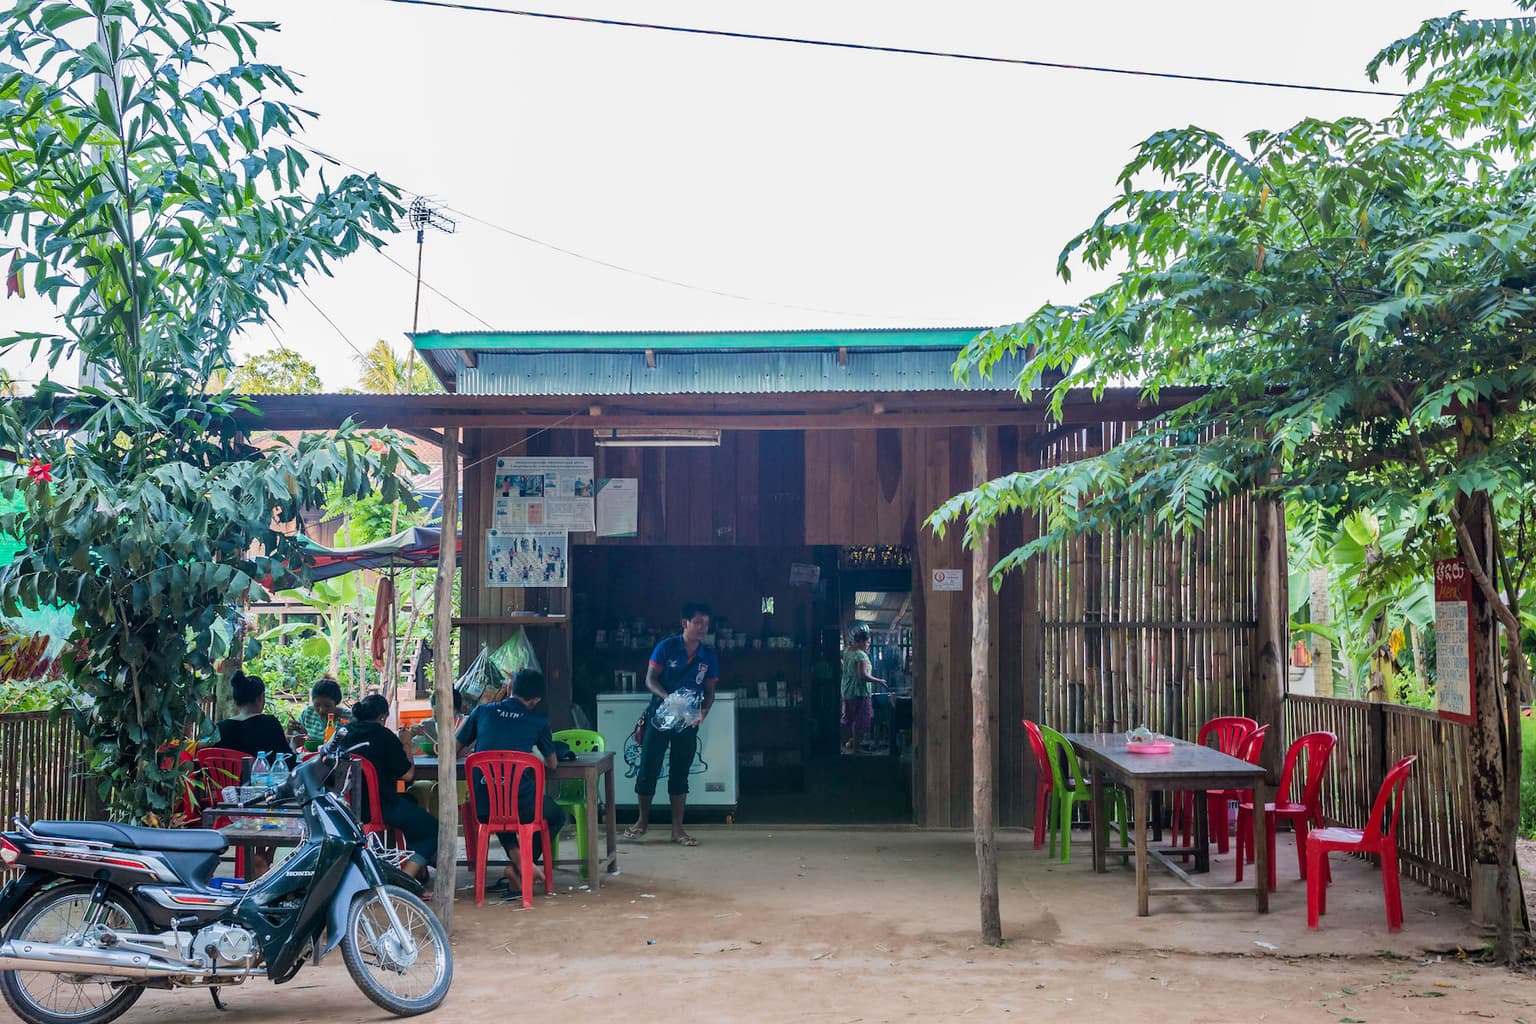 Small market in the wild east of Cambodia